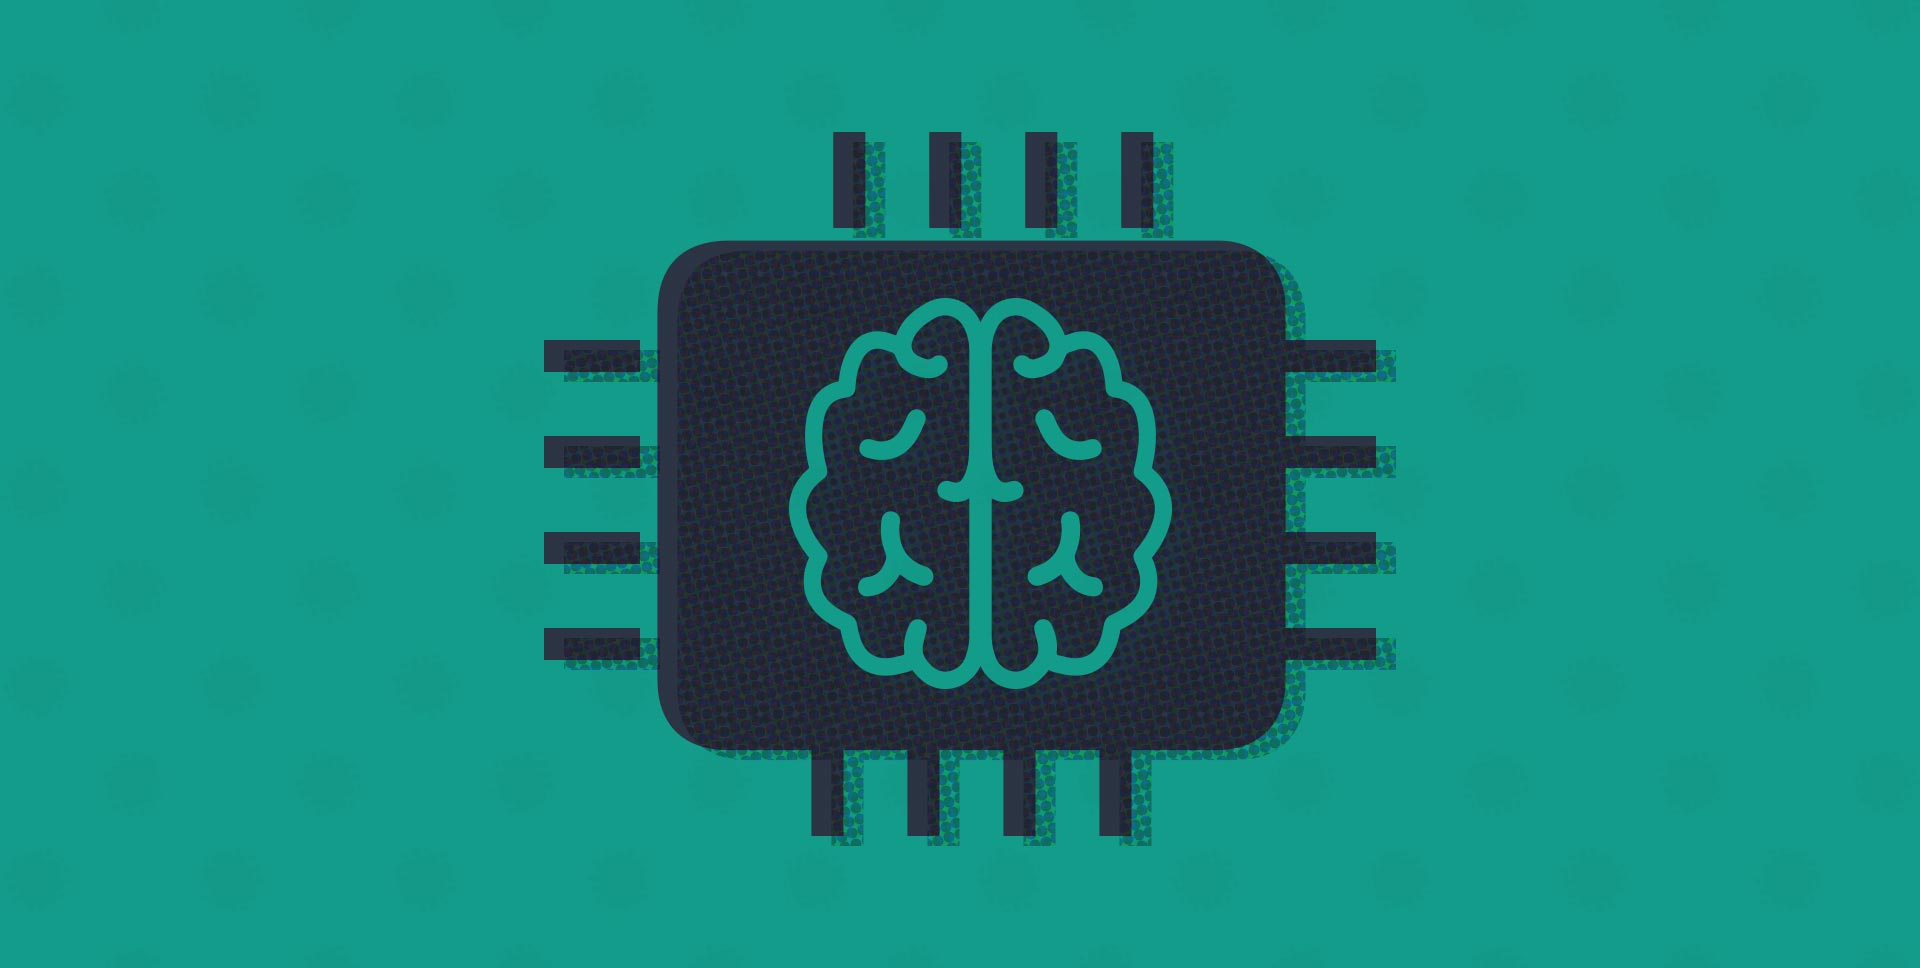 Illustration of a human brain on a computer chip symbolizing cognitive computing